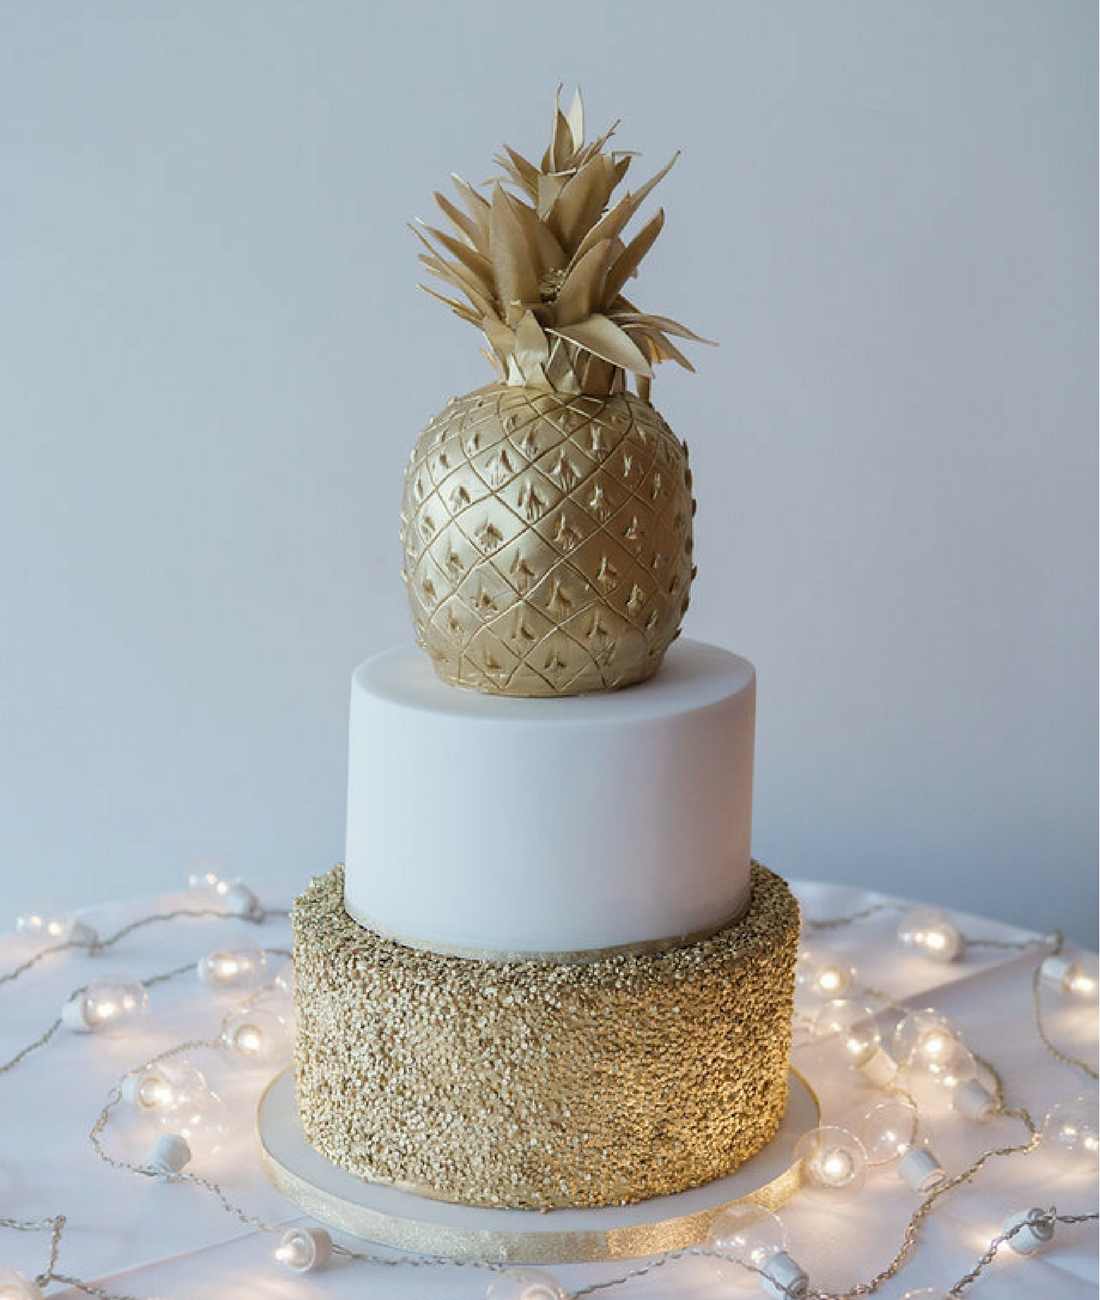 Love Artisan Wedding Cakes - Gold Sparkly Pineapple Wedding Cake